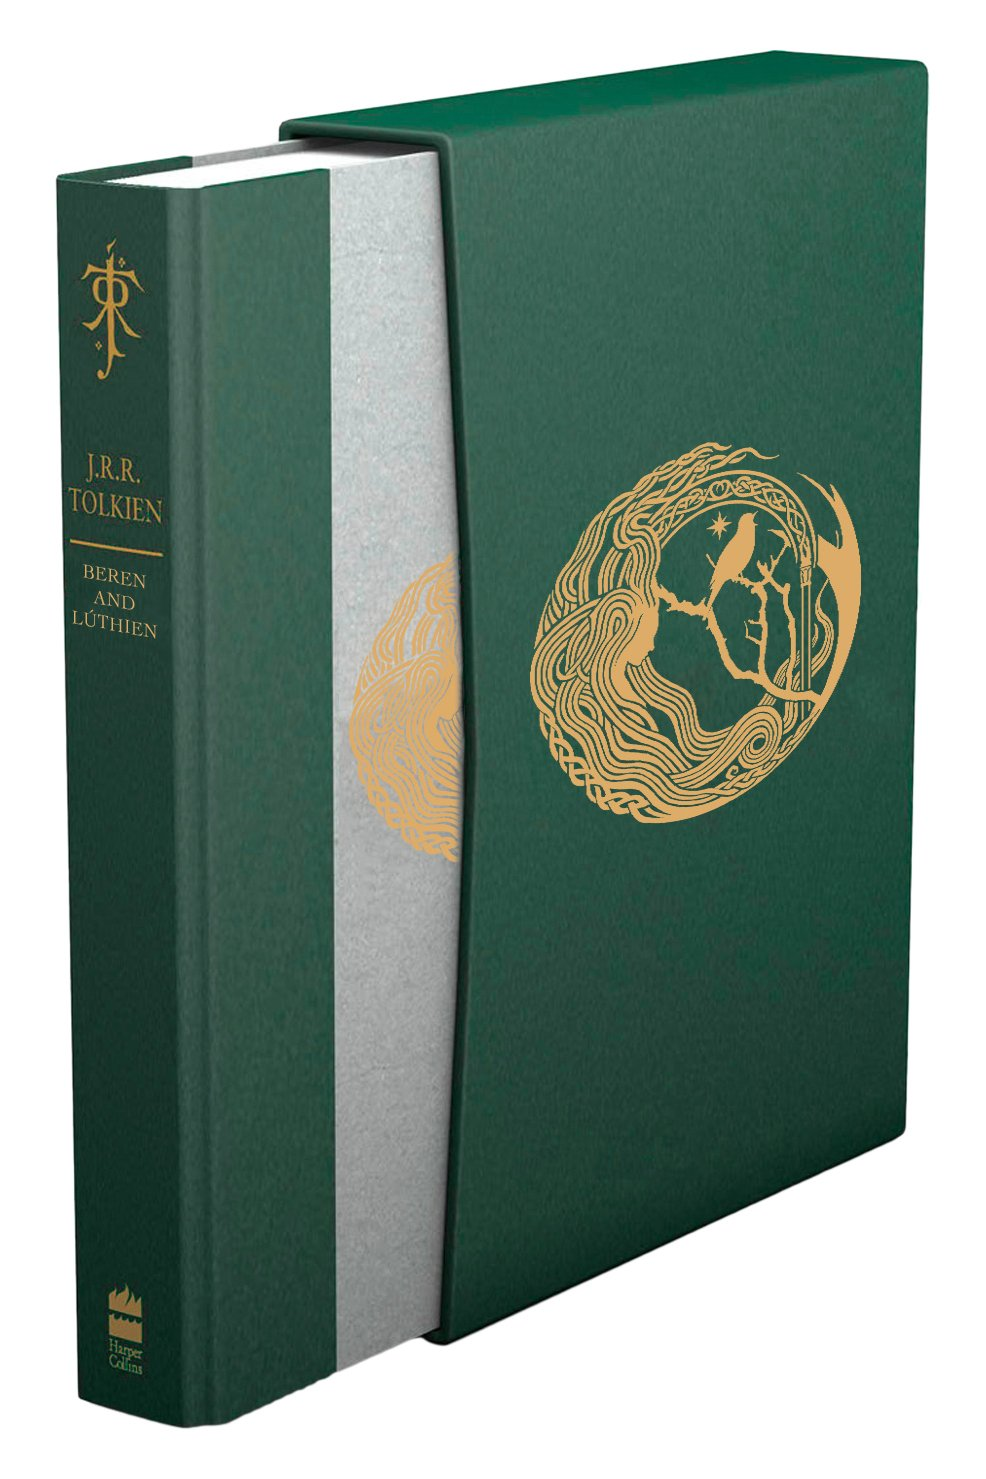 Image for Beren and Lúthien (Deluxe Slipcased edition)